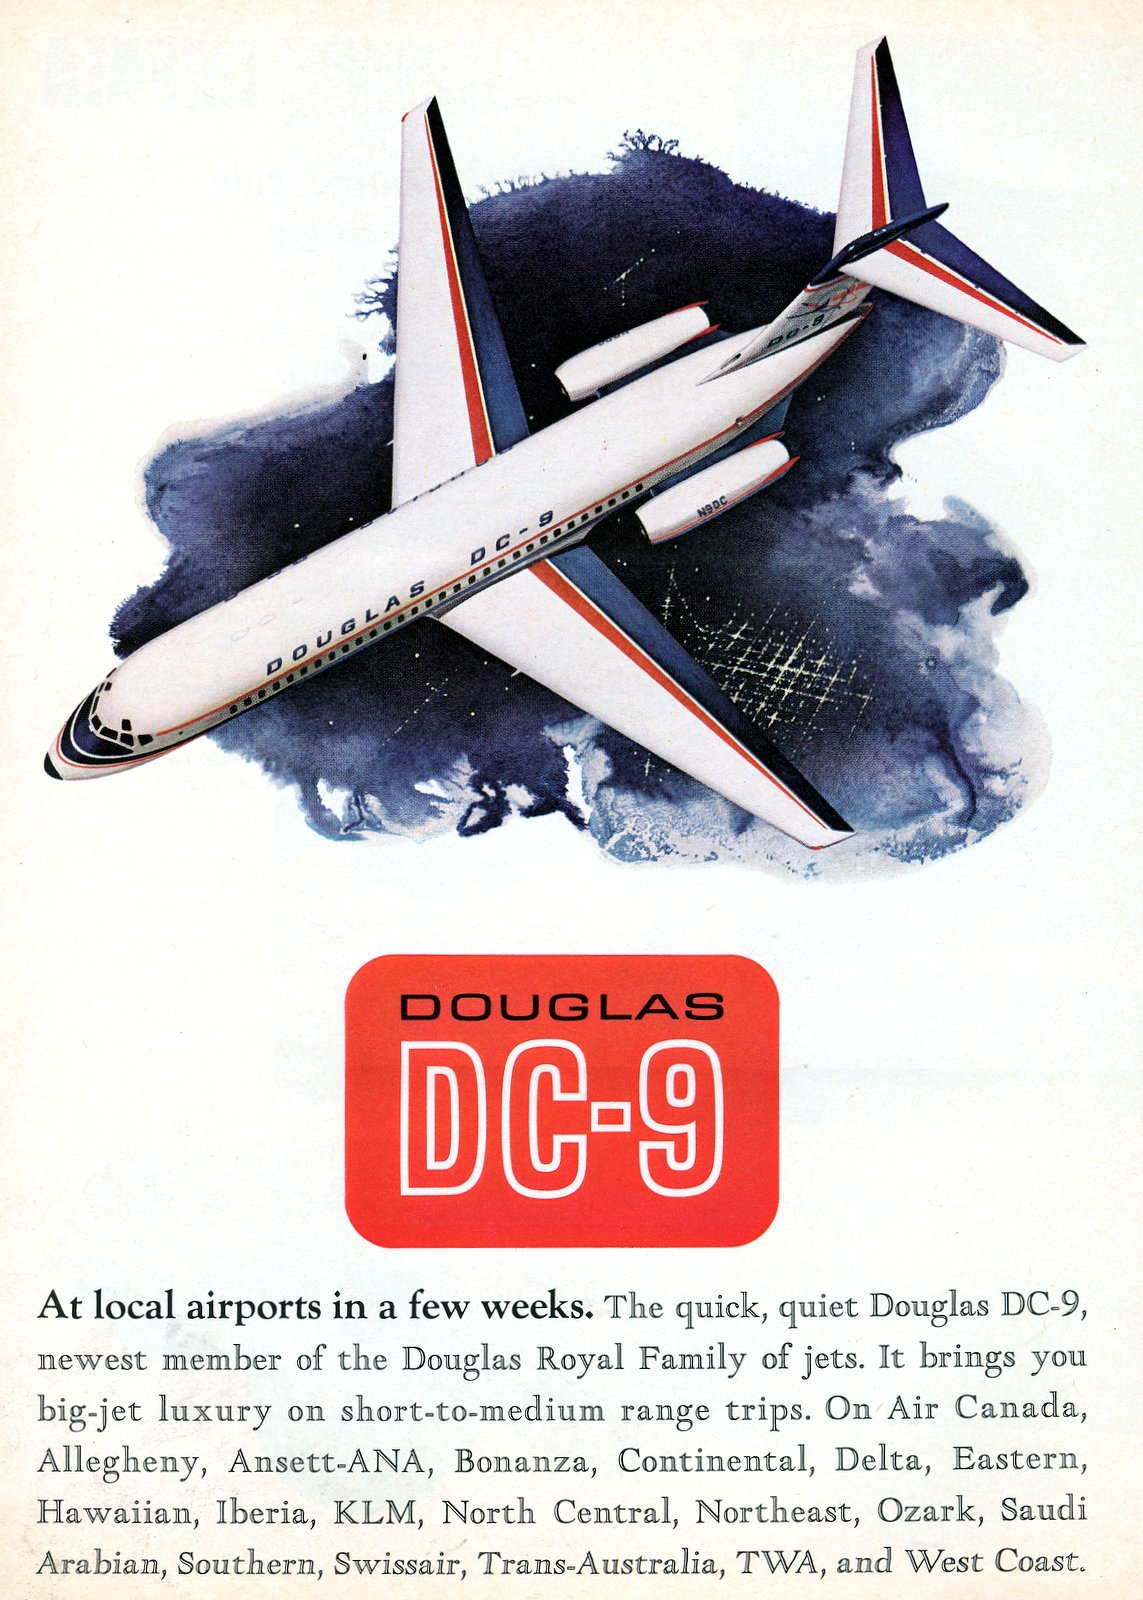 Introducing the Douglas DC-9 jet airplane - November 29, 1965